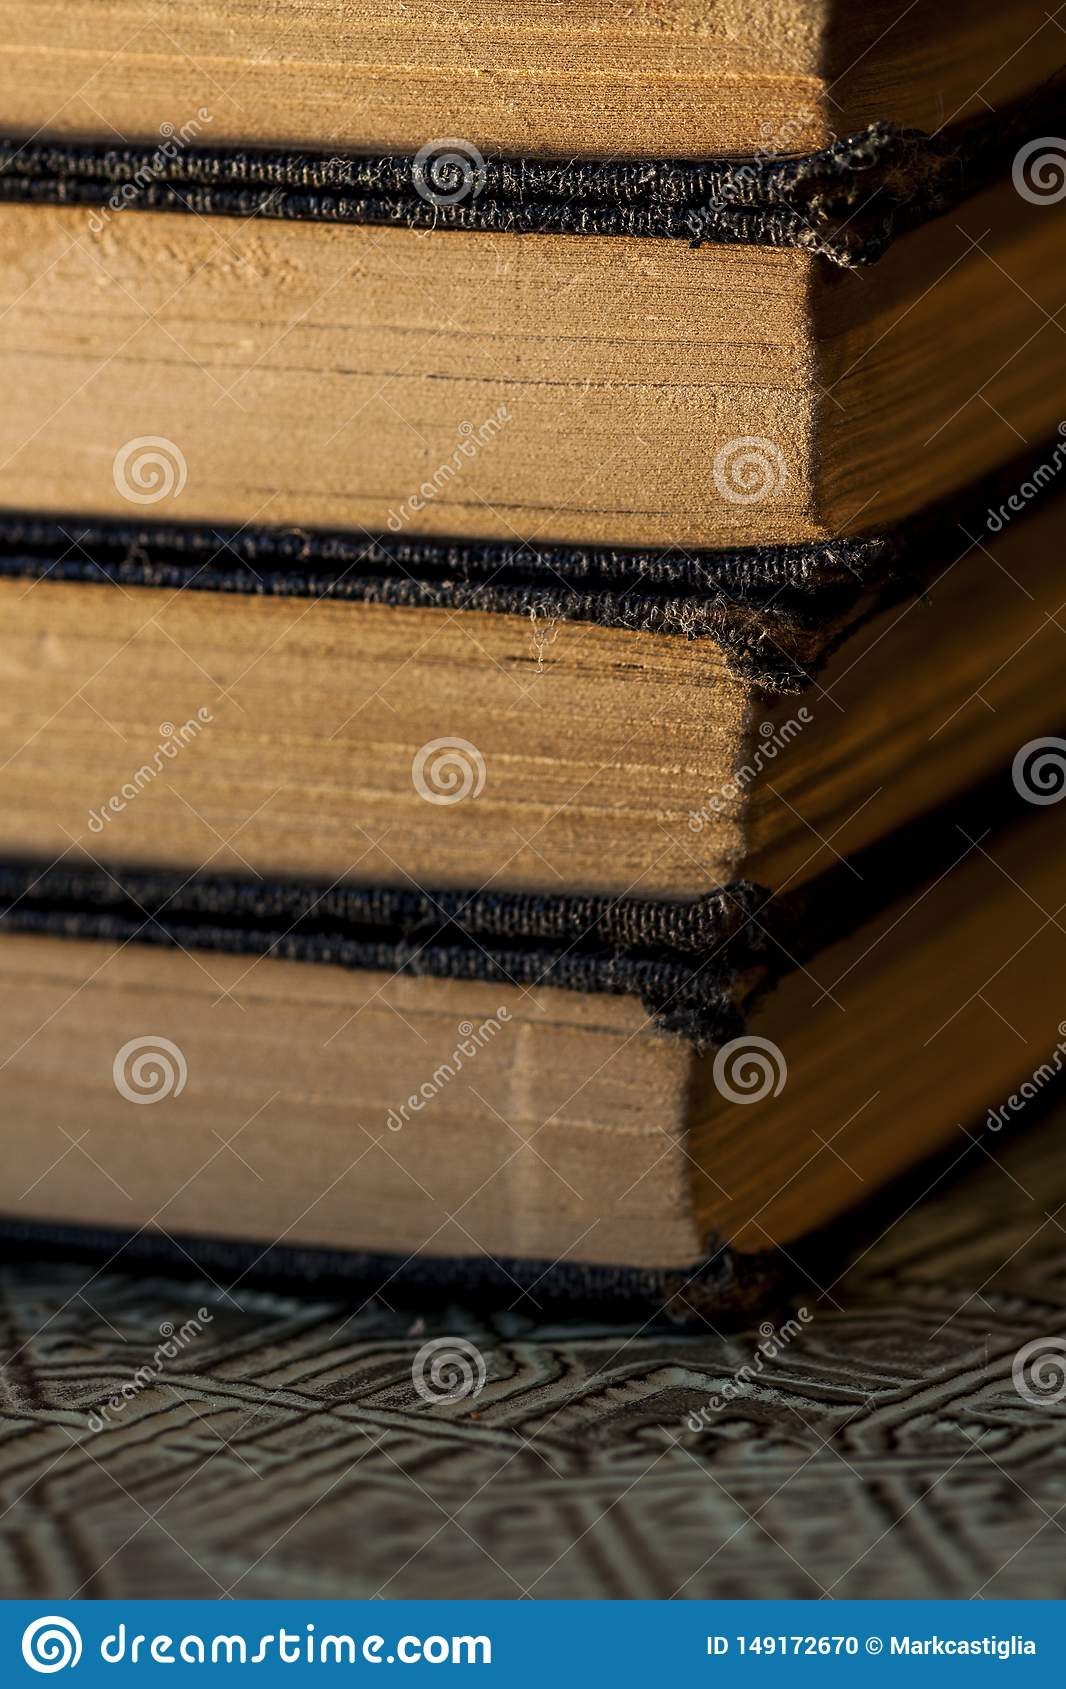 Old worn books stacked on textured surface close up